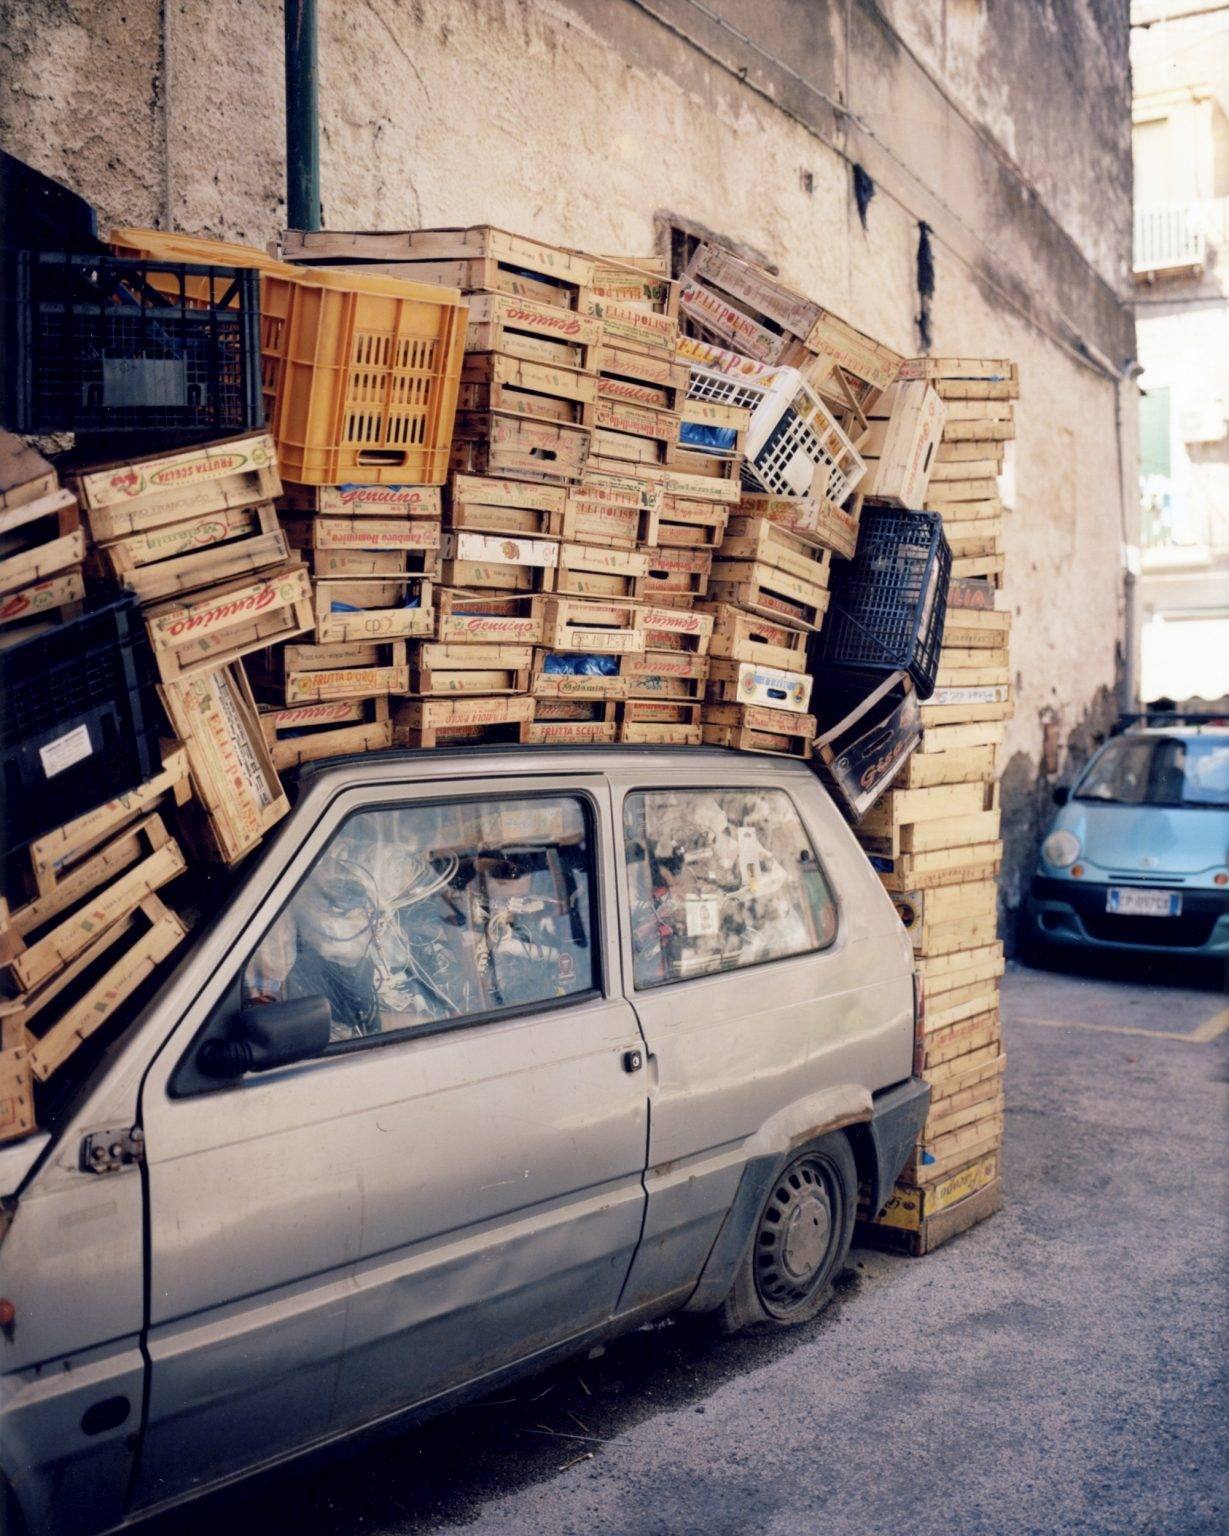 Fiat Panda covered by vegetable boxes. Paesi Vesuviani, Province of Naples. 2020